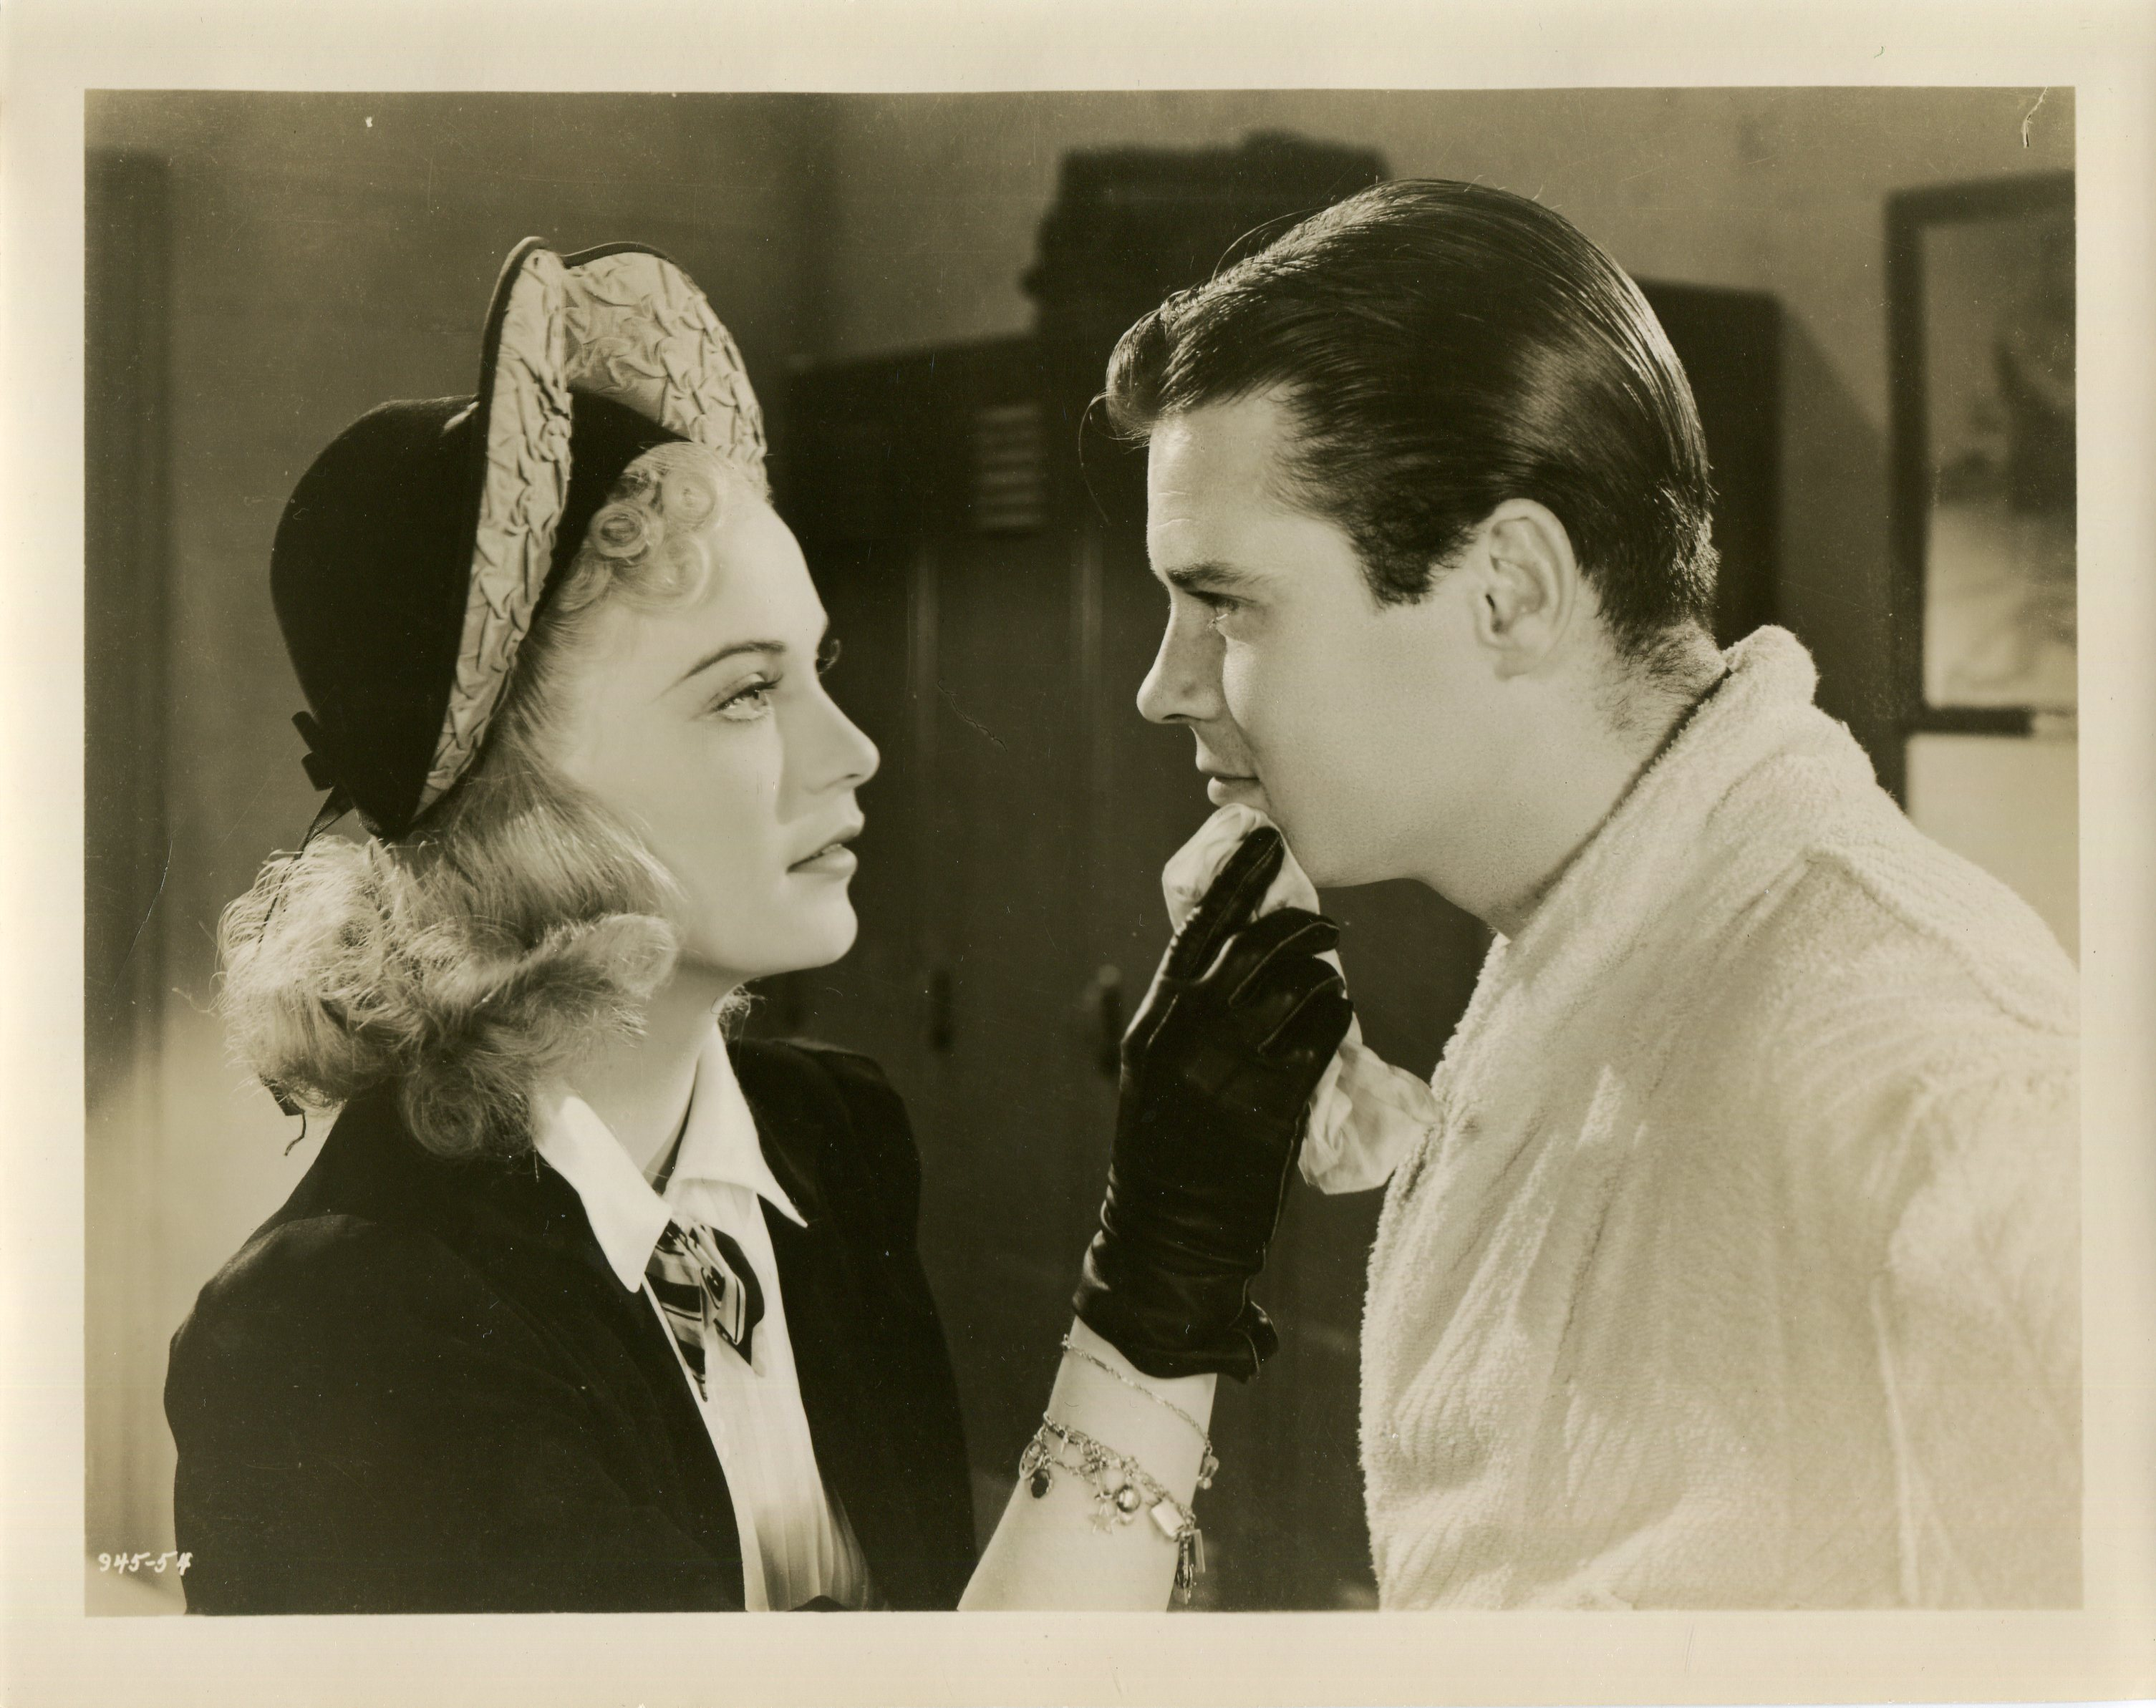 Tom Brown and Nan Grey in Ex-Champ (1939)